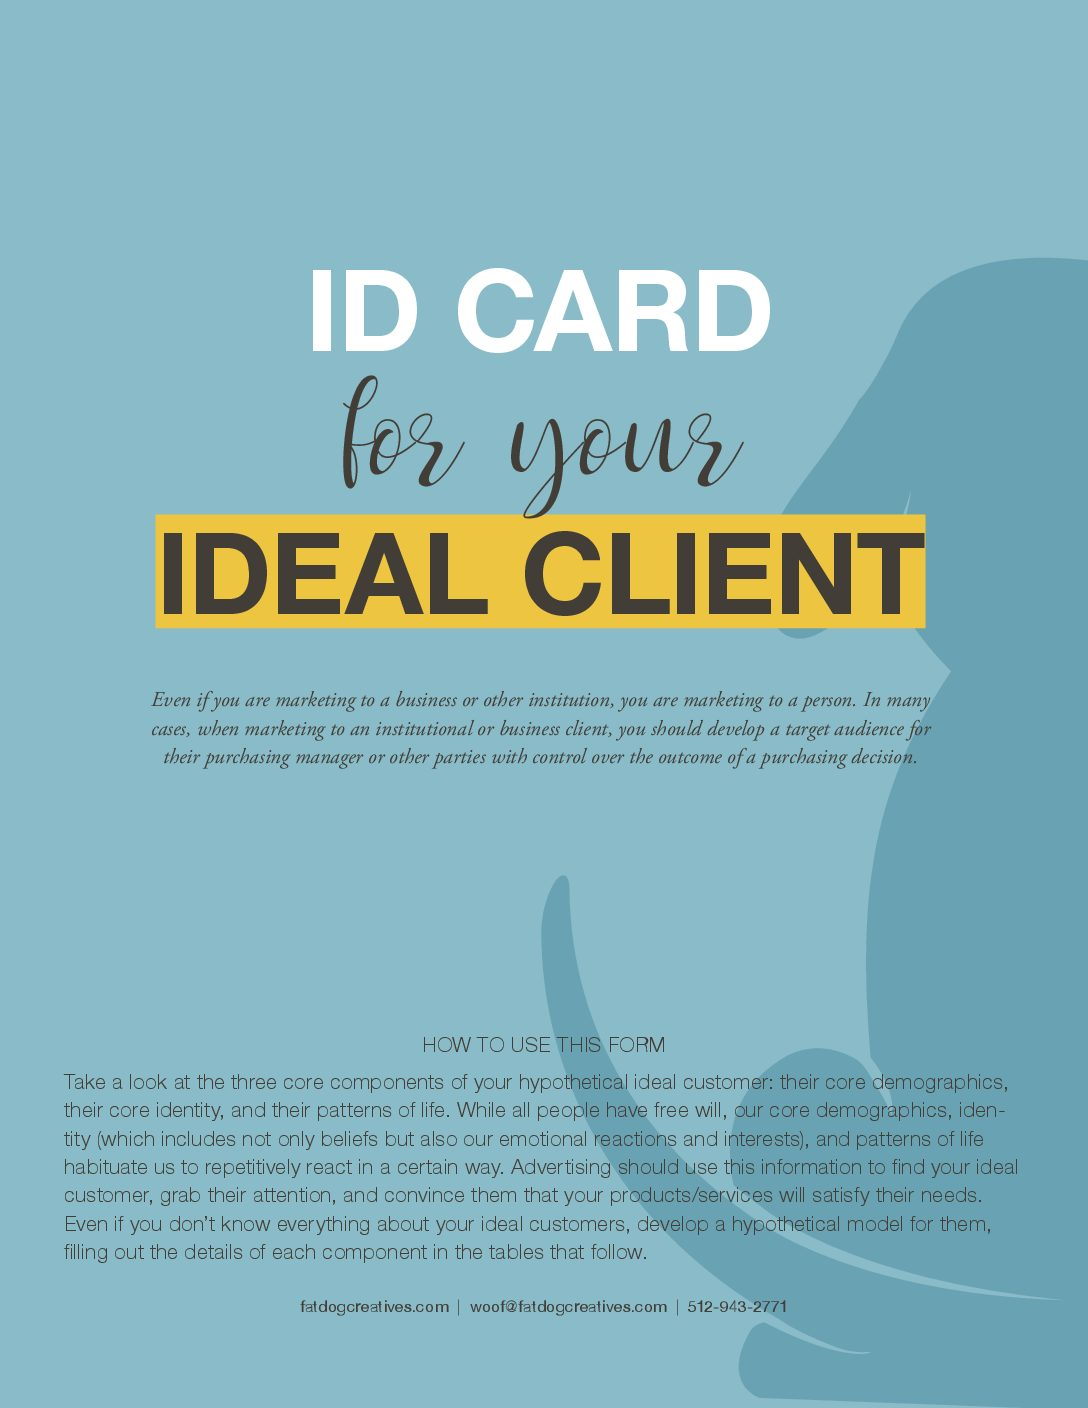 Ideal Client ID Card cover image